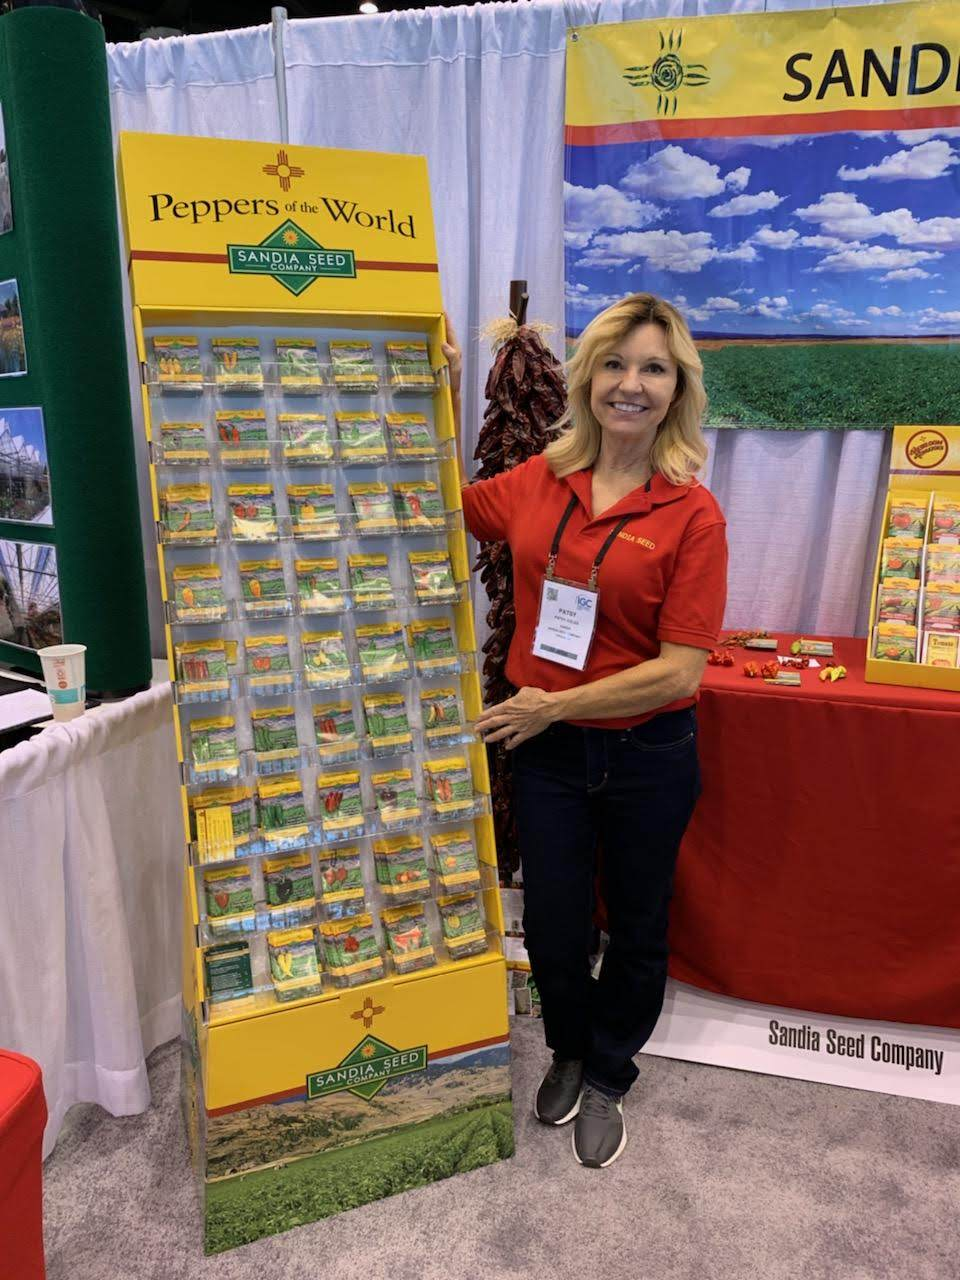 Patsy, owner of Sandia Seed at the Independent Garden Center Association Show in Chicago